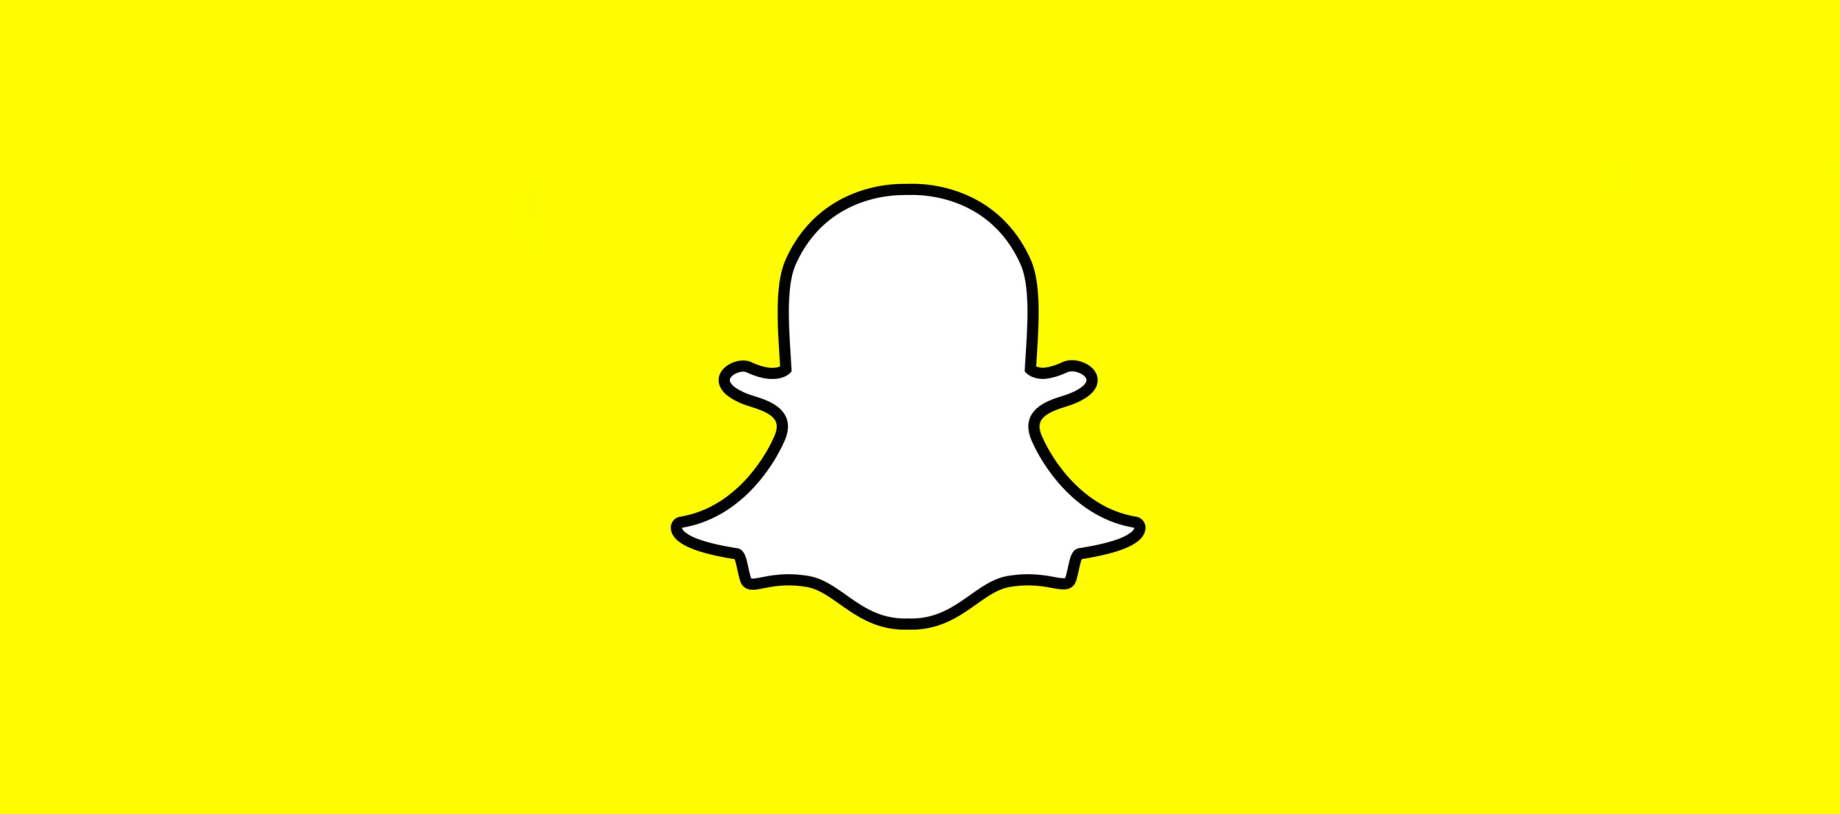 Snapchat has more young daily visitors than Facebook!